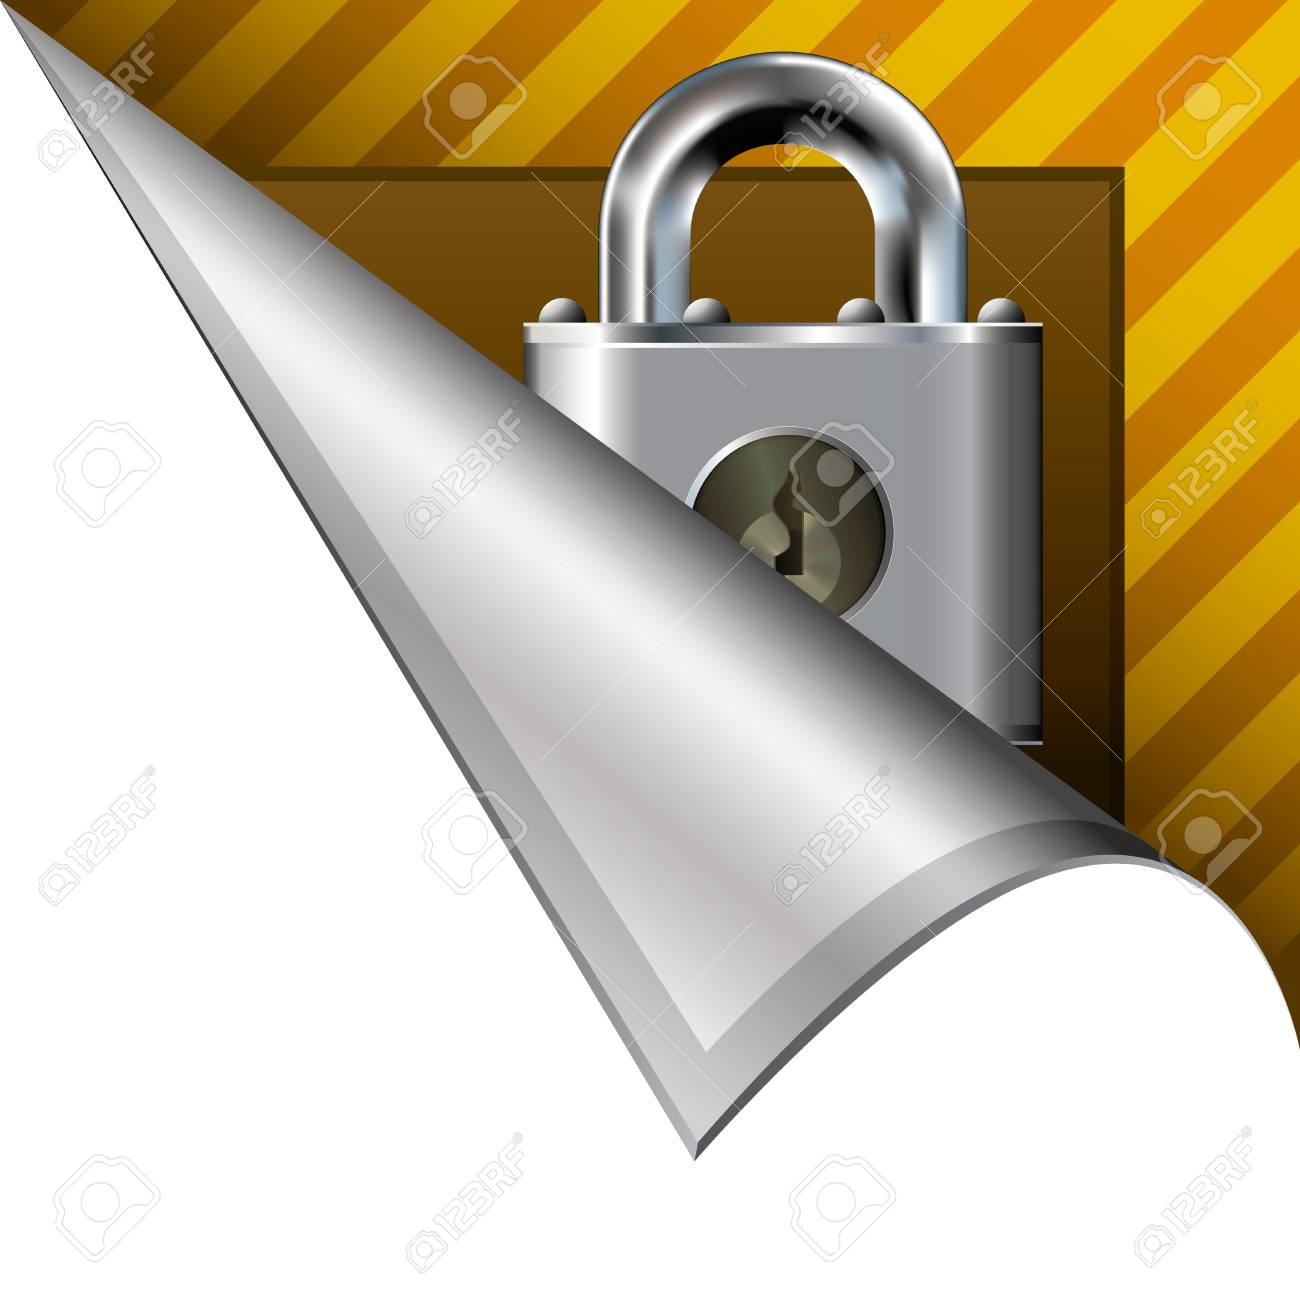 Secure or lock icon on vector peeled corner tab suitable for use in print, on websites, or in advertising materials Stock Photo - 14706856